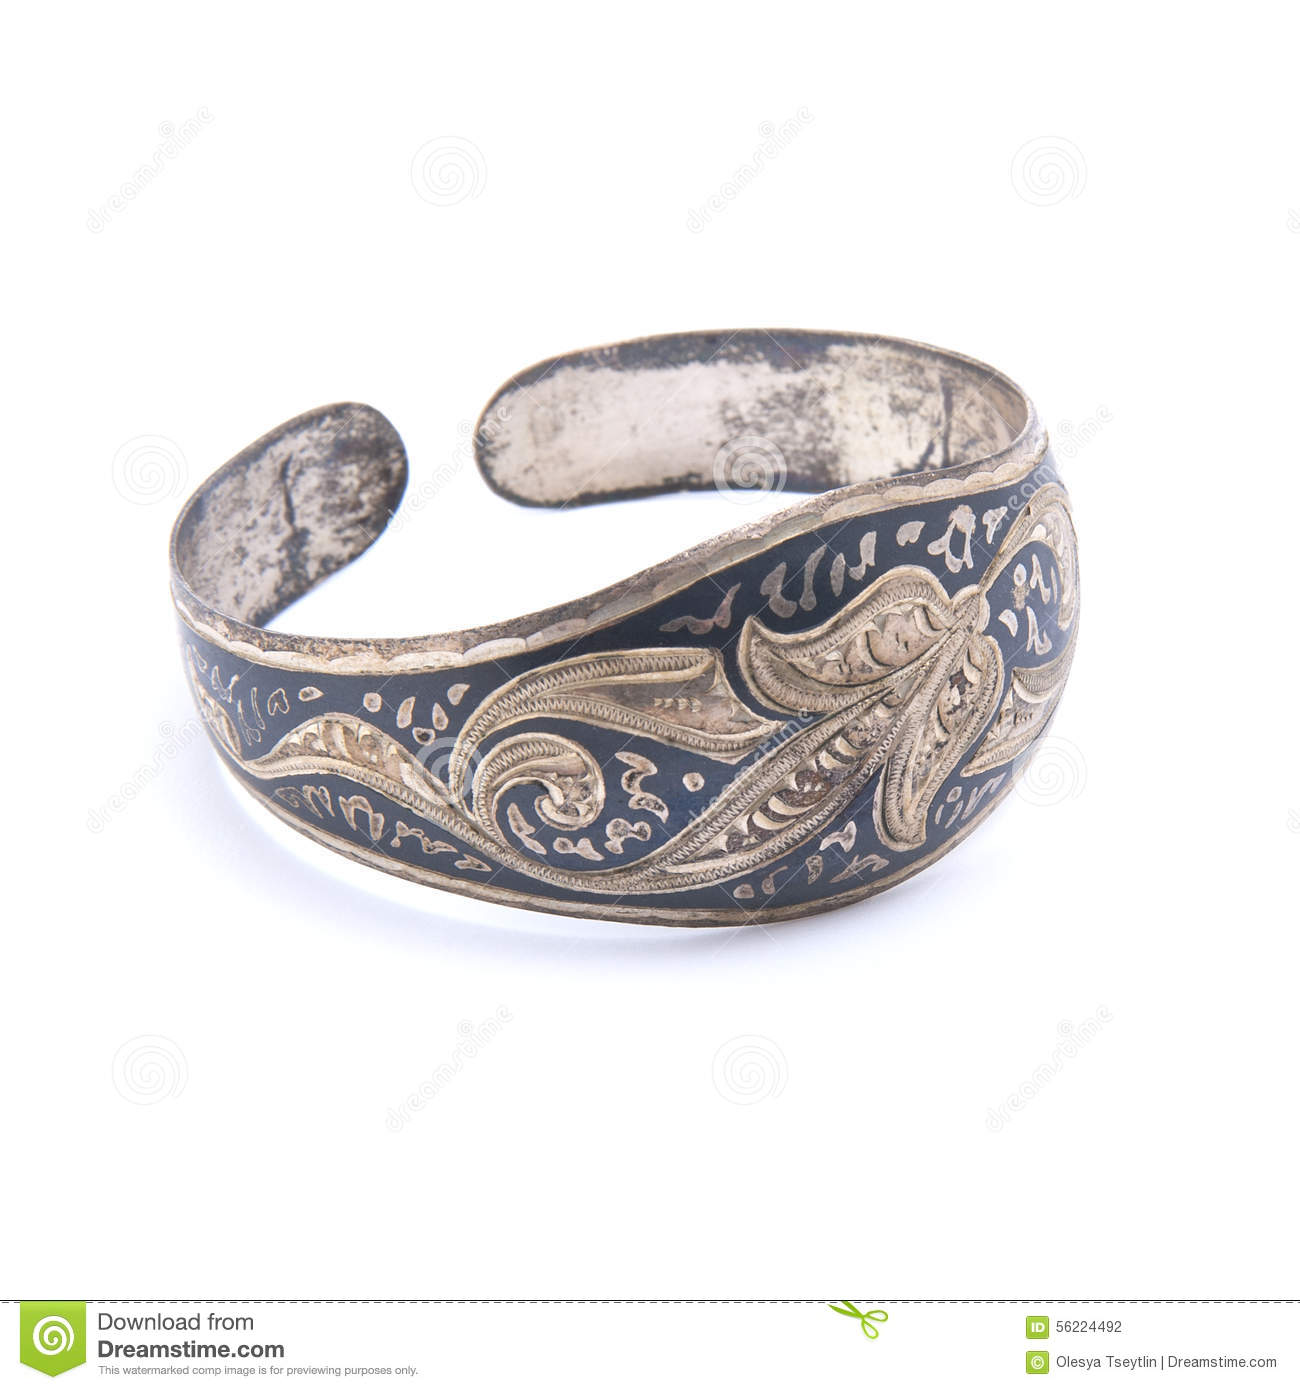 matagi tag sorensen american cuff tagged wp sterling native contemporary jewelry indian silver mokume bracelet